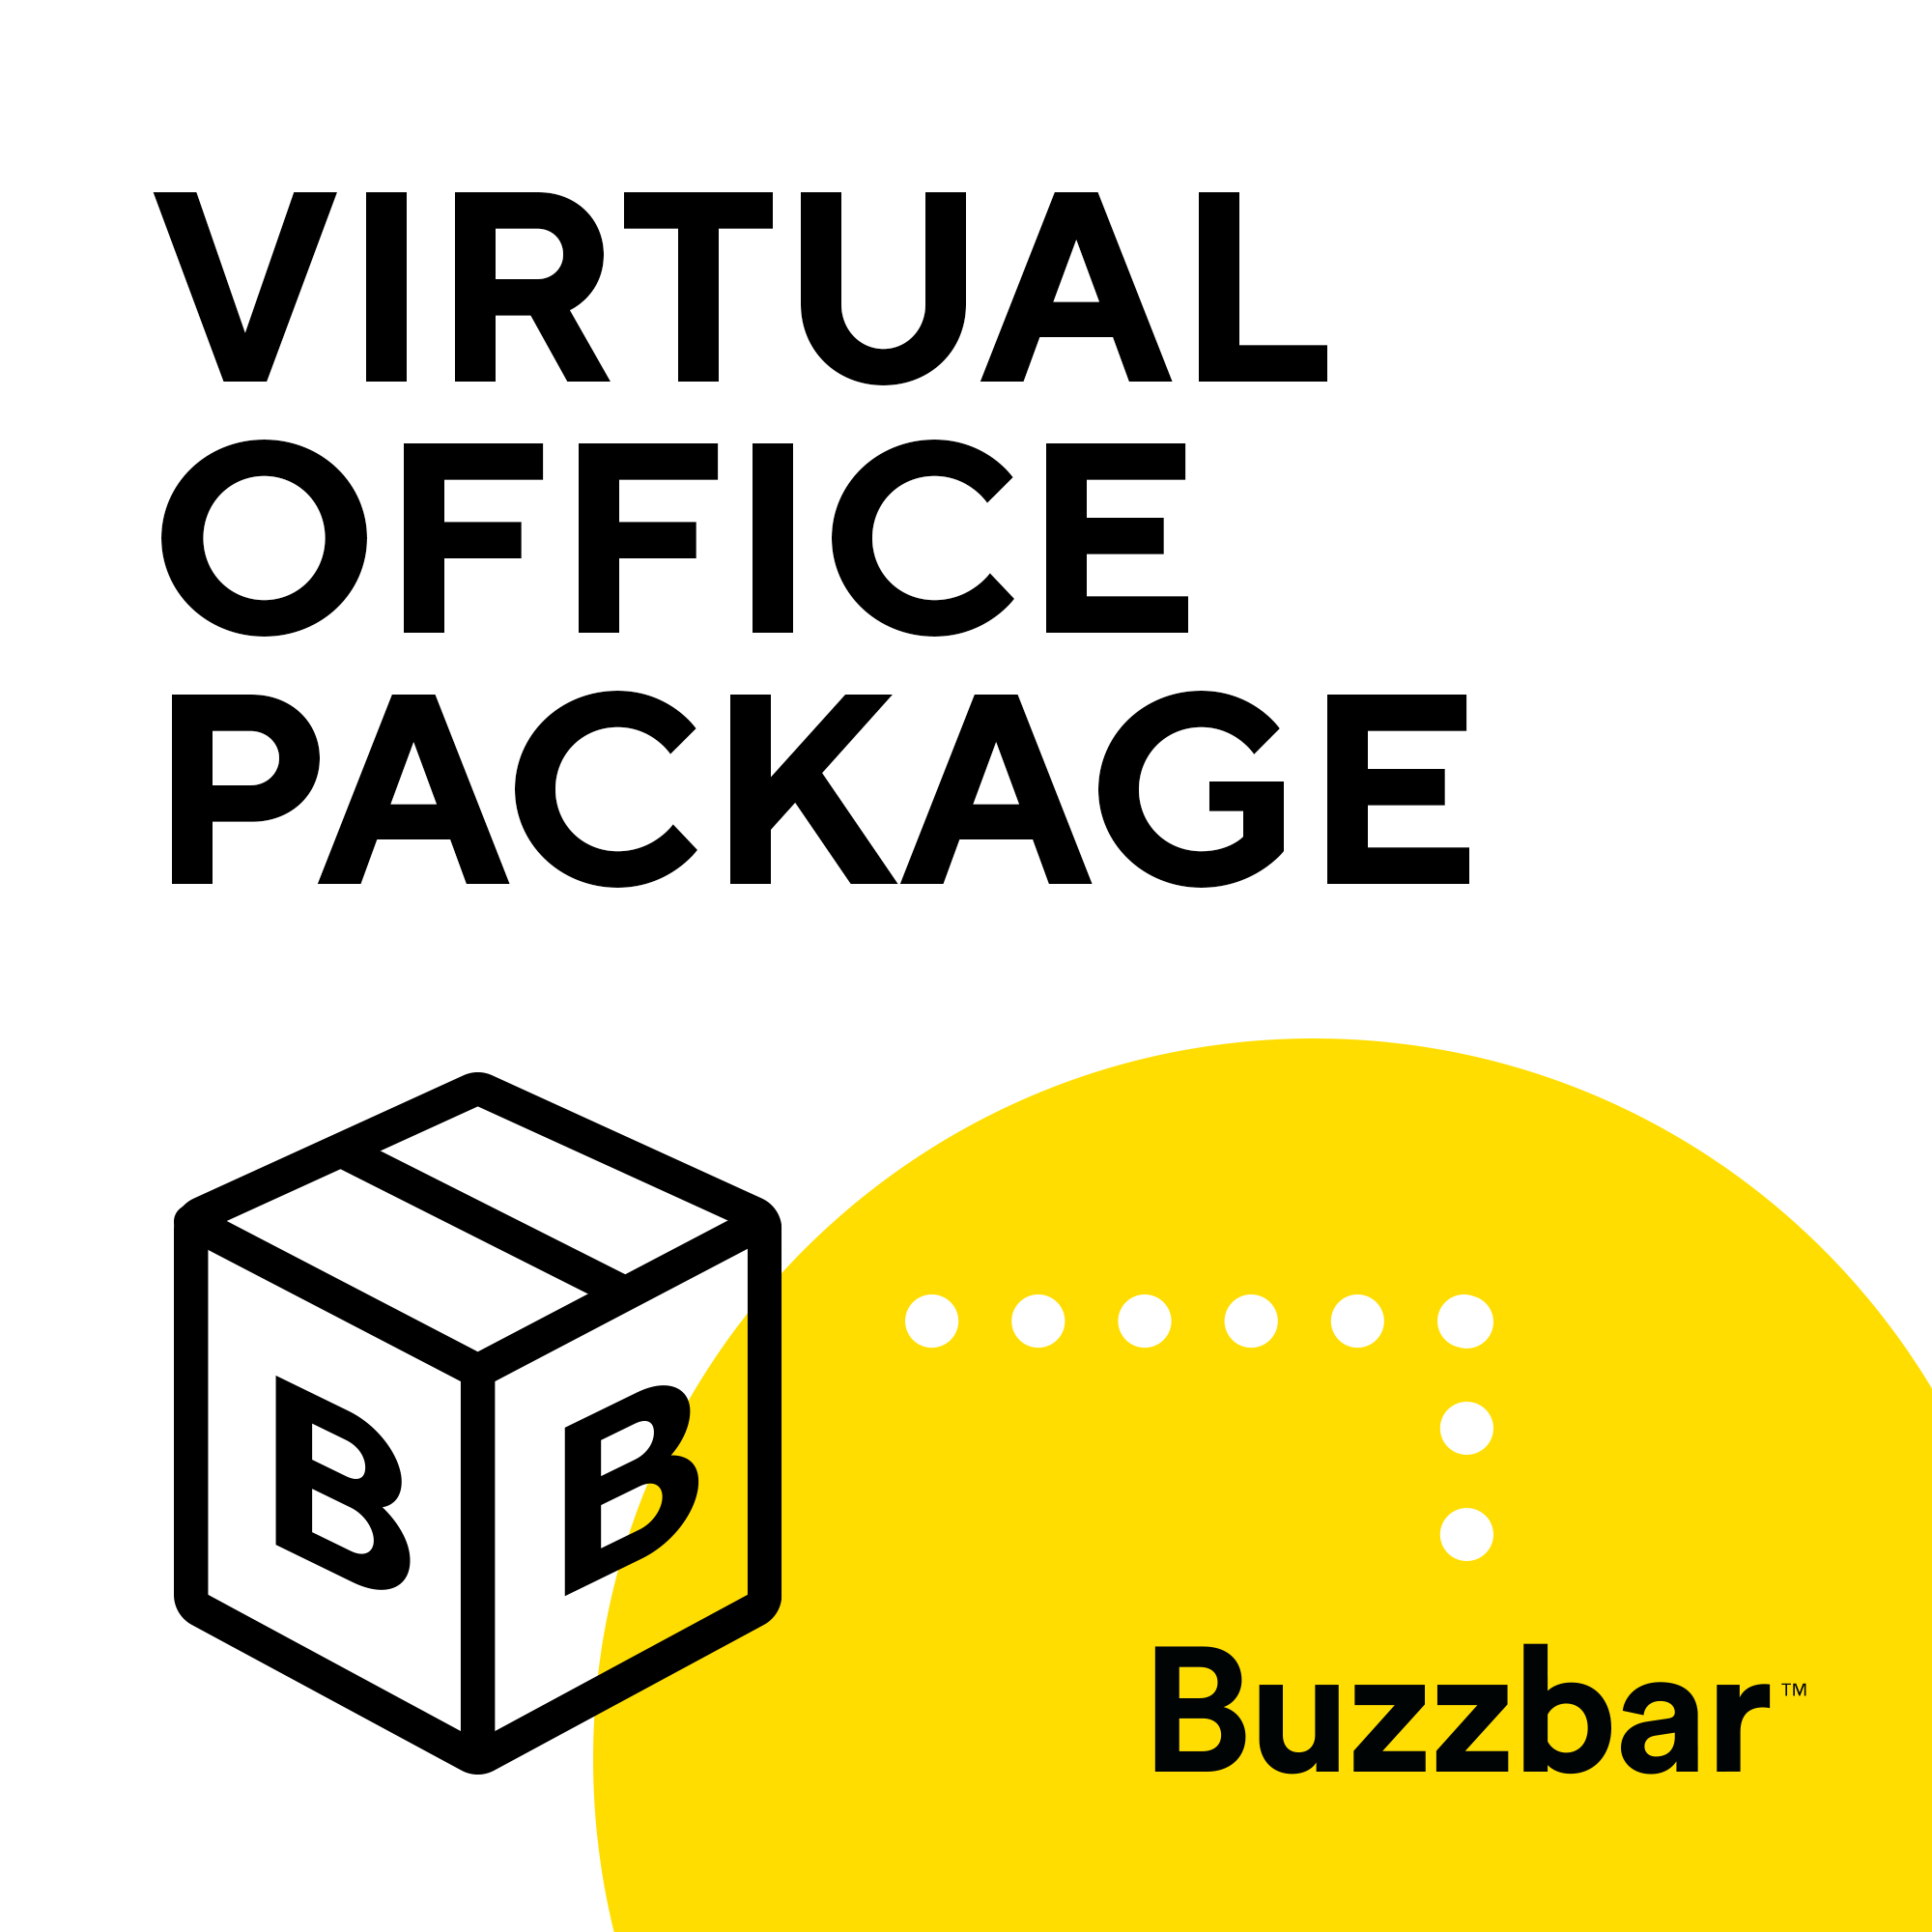 Introducing the Buzzbar Virtual Office Package!